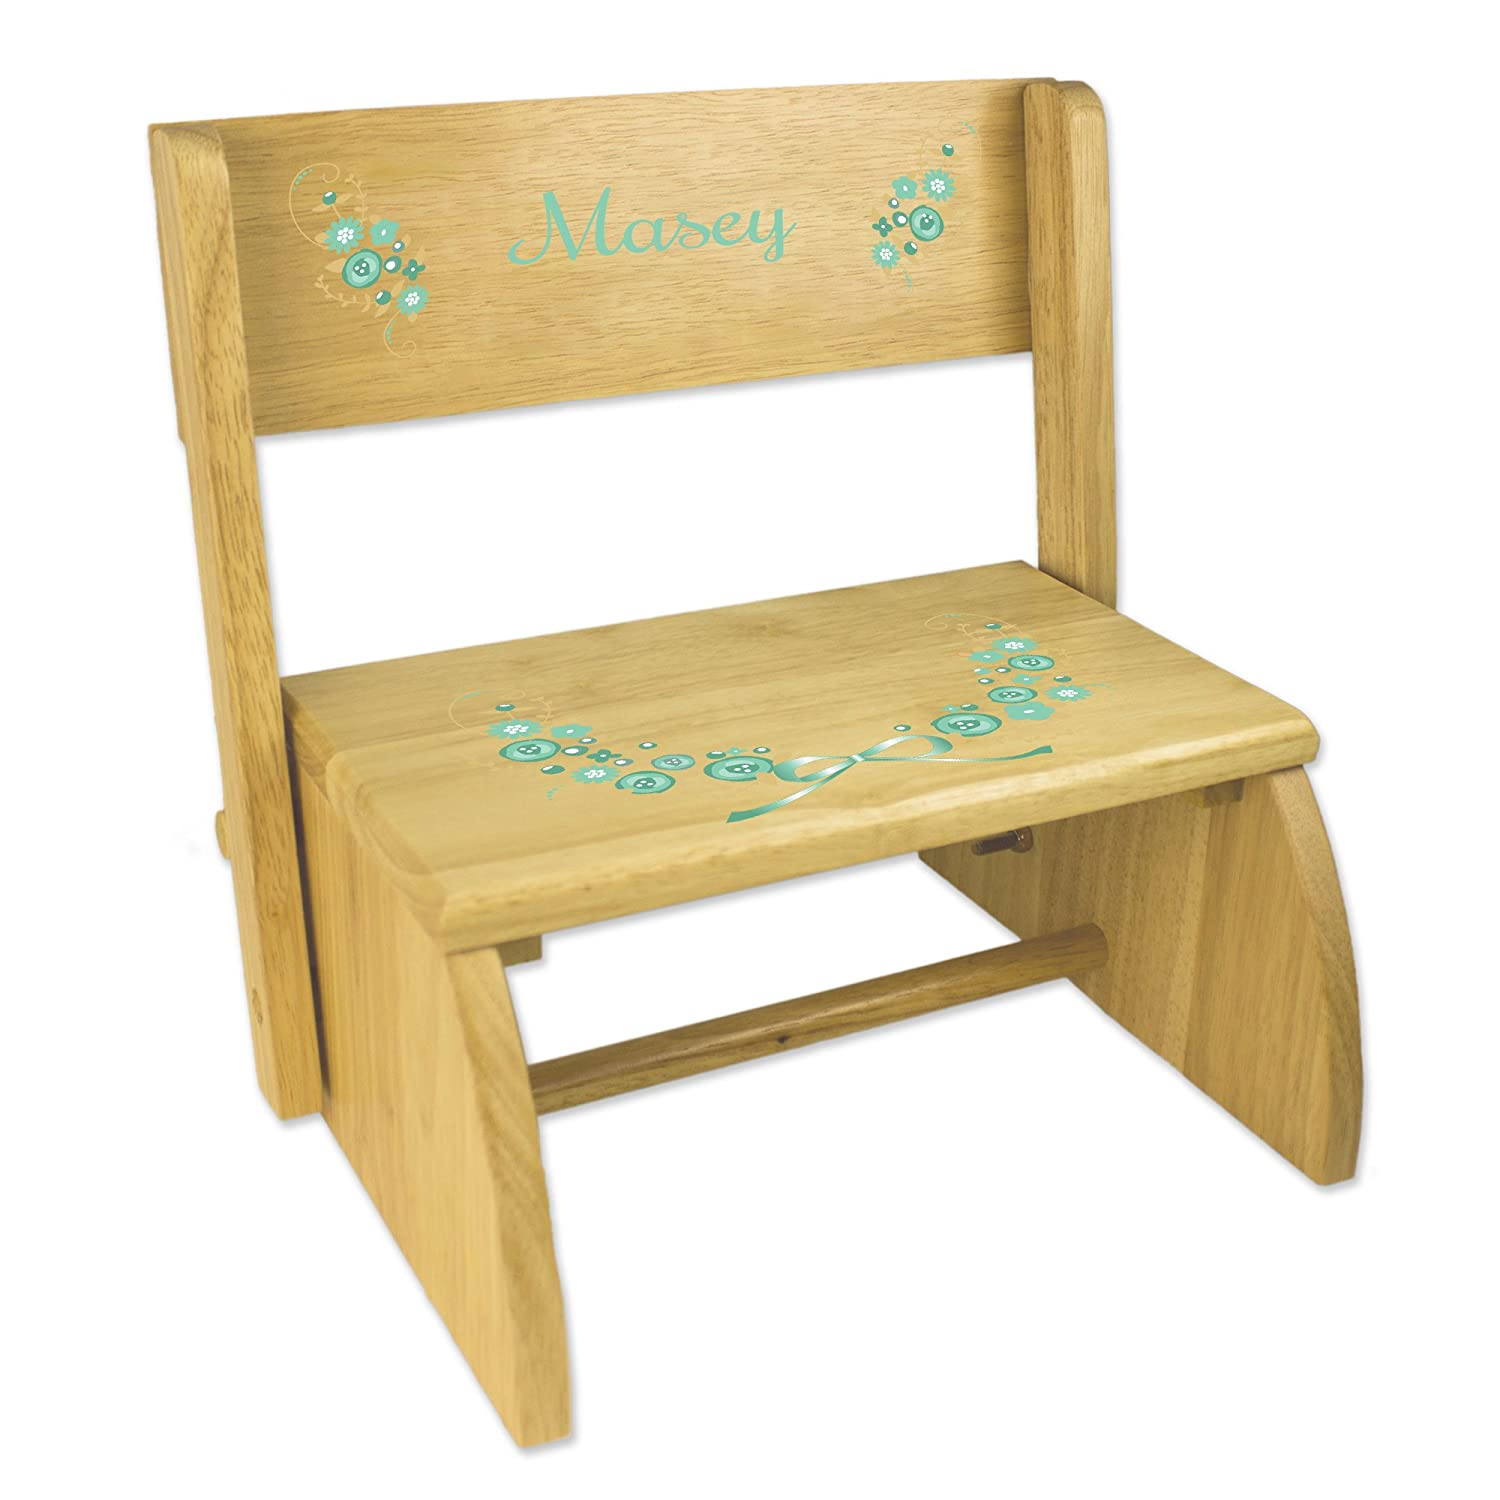 Personalized Golden Mint Vintage Garland Childrens and Toddlers wooden folding stool MyBambino stoo-nat-319e